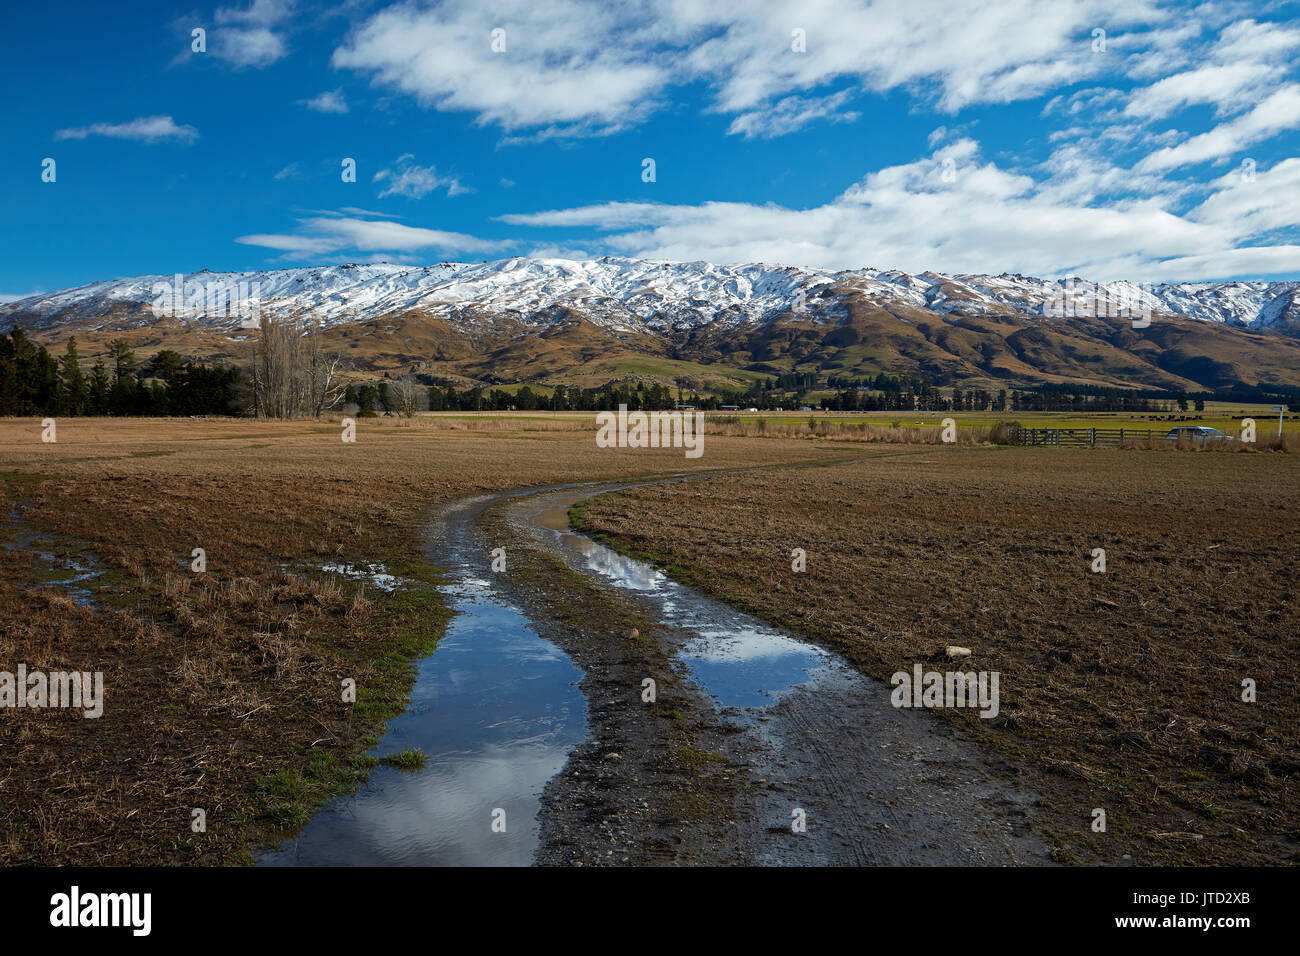 Farm track and Rock and Pillar Range, Sutton, near Middlemarch, Strath Taieri, Otago, South Island, New Zealand - Stock Image